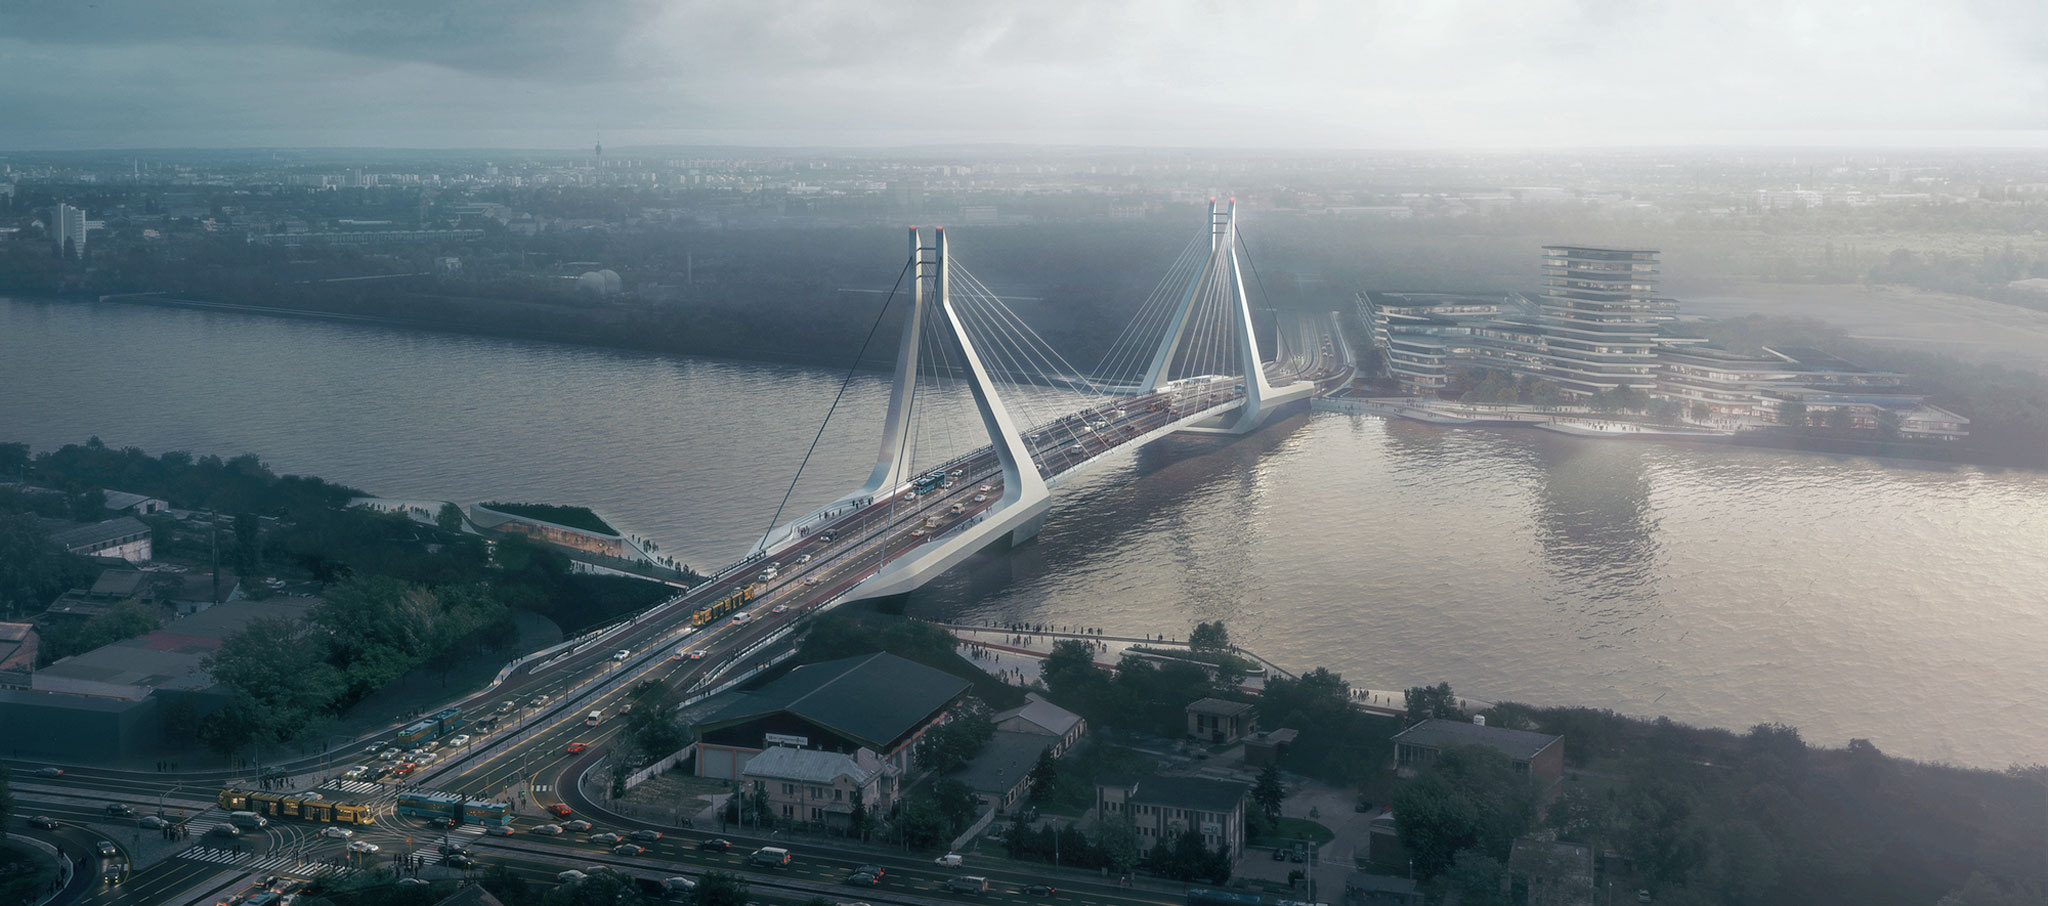 UNStudio wins the competition for the New Budapest Bridge - the first international bridge design competition in Hungary for over 120 years